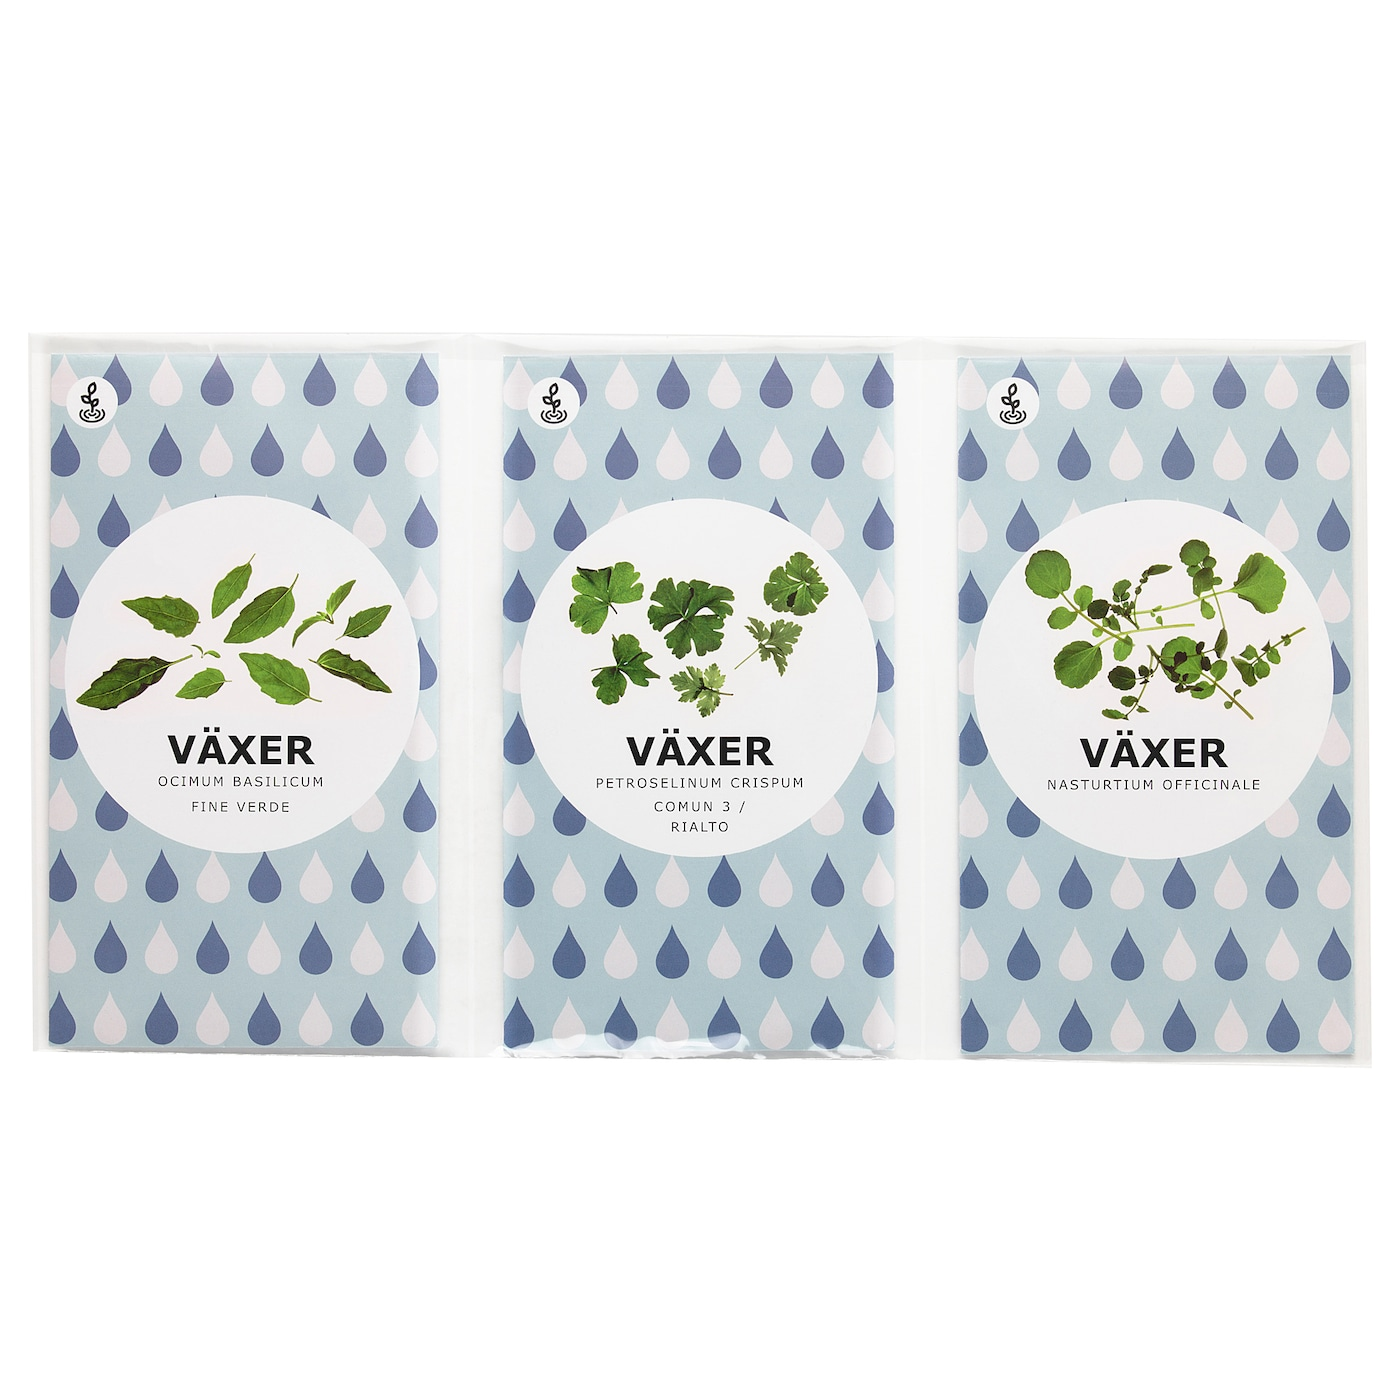 IKEA VÄXER seeds These seeds can be used for both hydroponic and traditional cultivation.